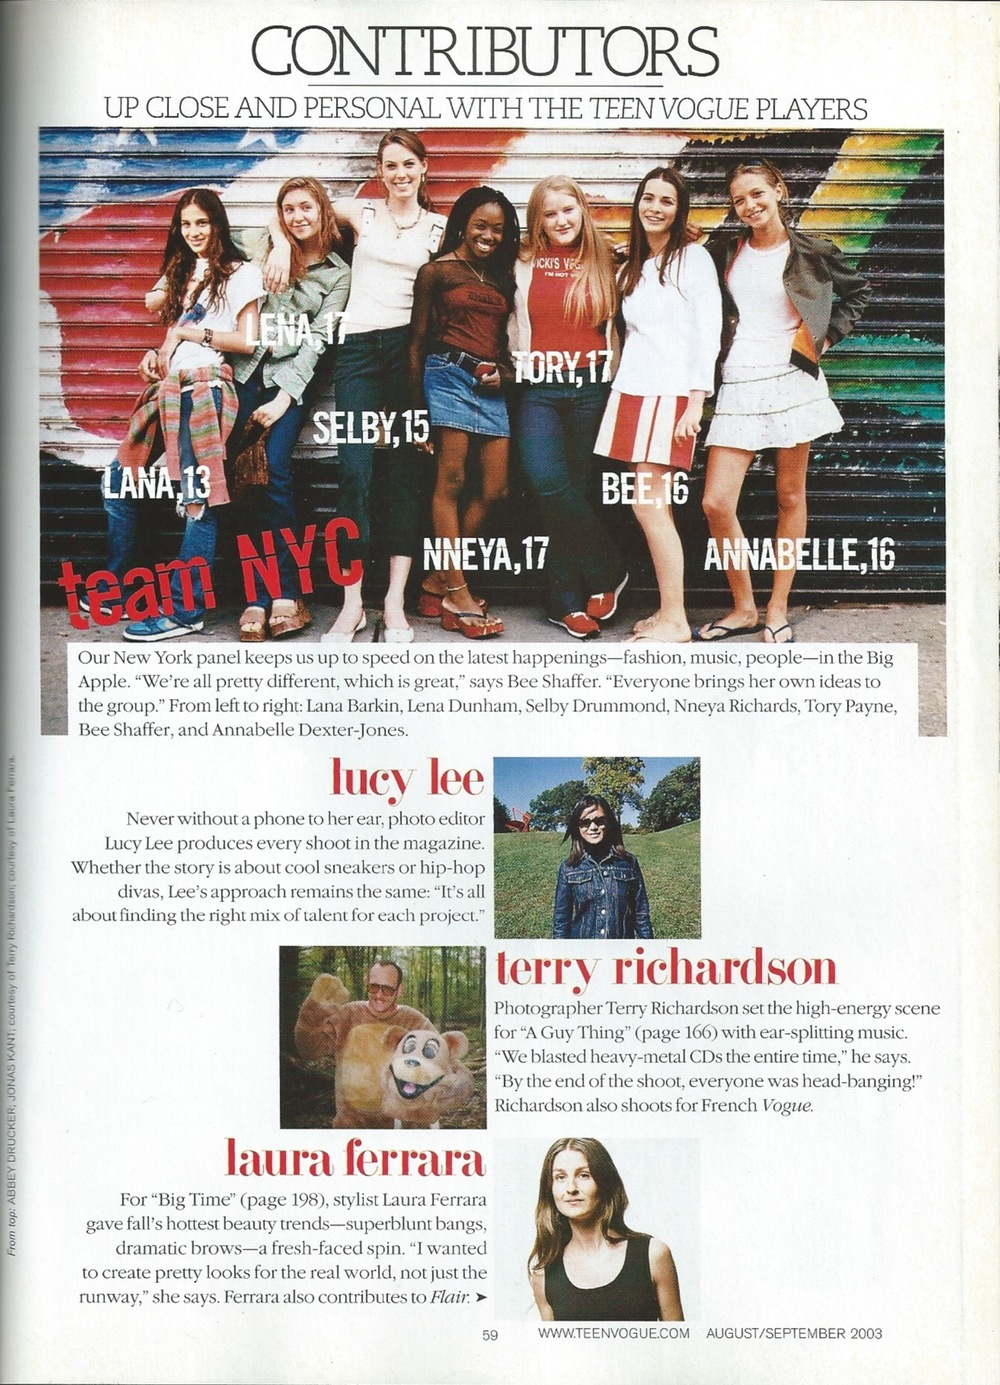 teen VOGUE magazine founding contributing editor from 2003